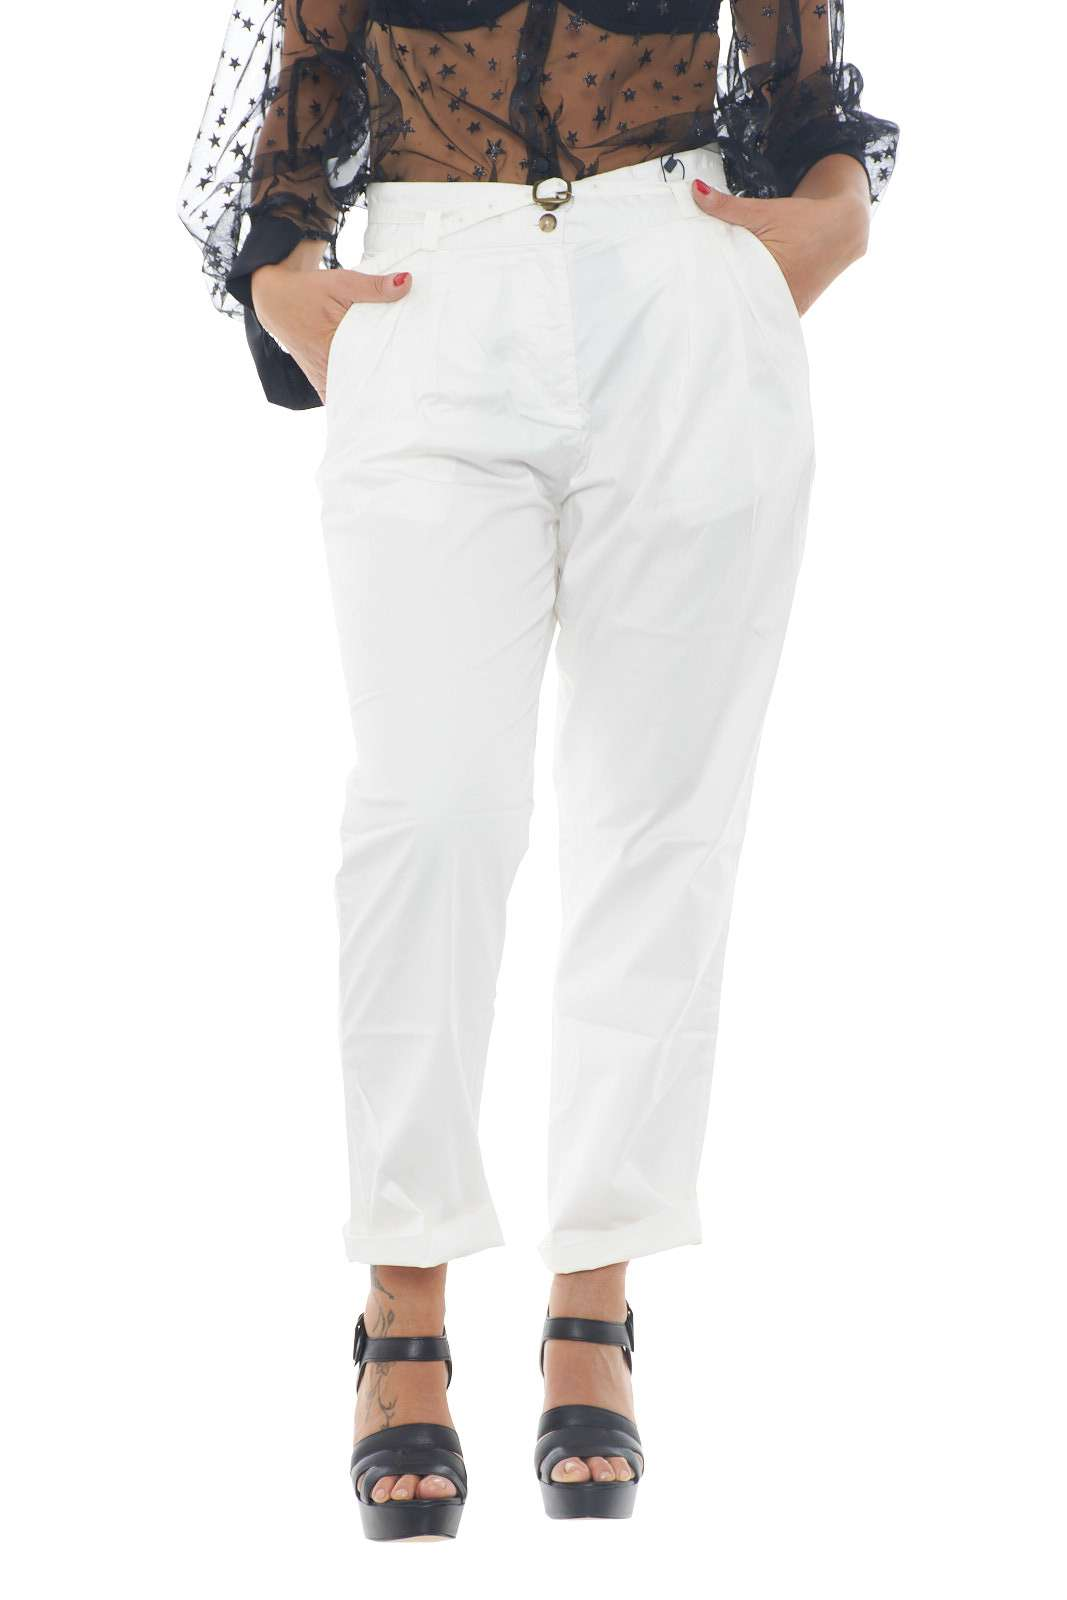 /media/catalog/product/a/i/PE-outlet_parmax-pantaloni-donna-Woolrich-wwpan1241-A.jpg